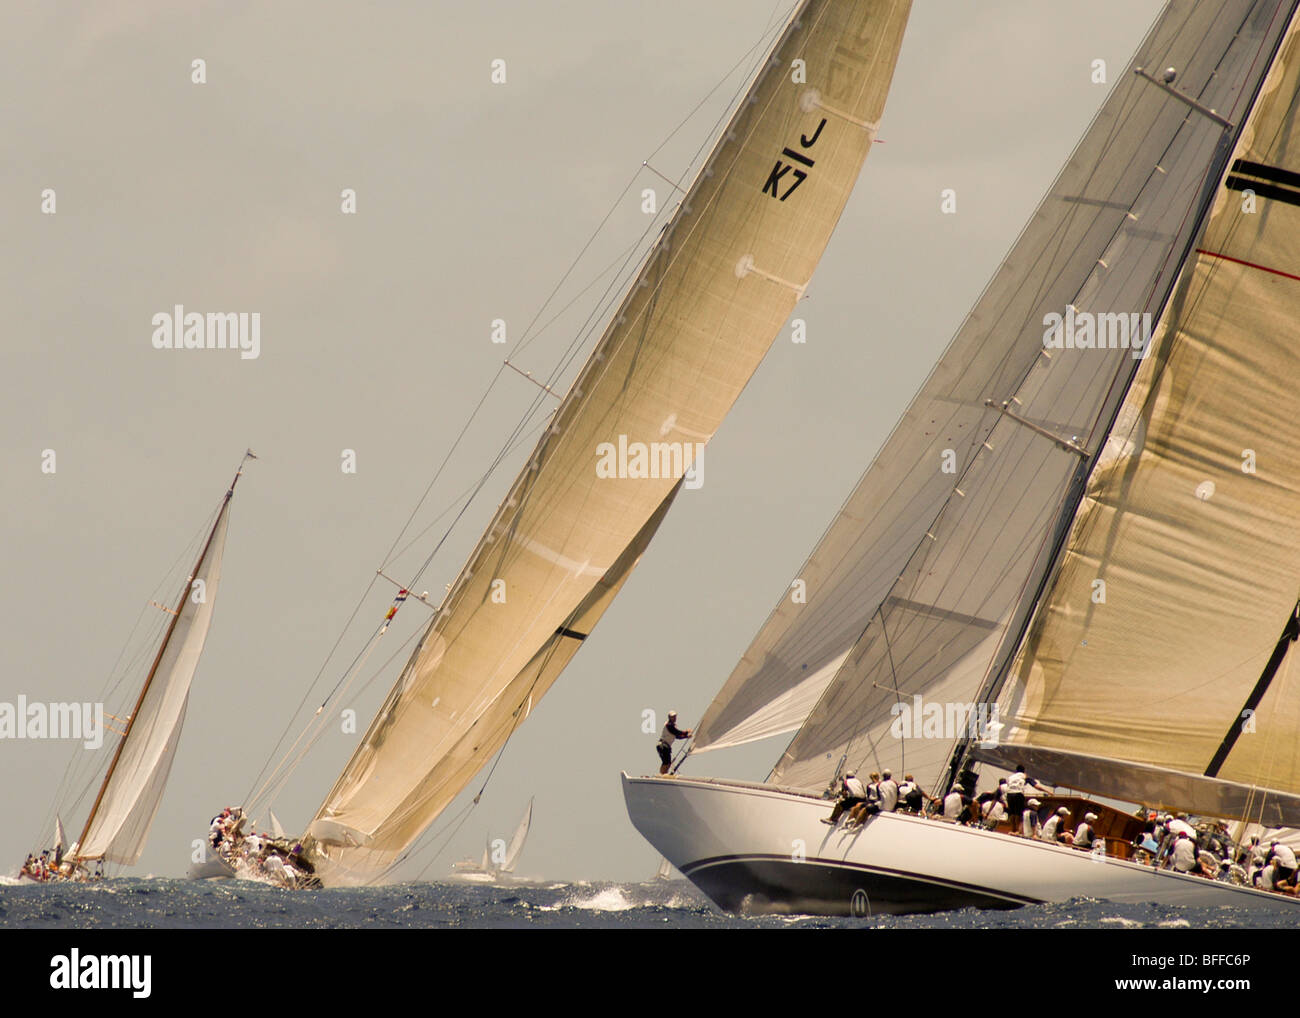 The J Class Velsheda and Ranger Compete in the Antigua Classic Yacht Regatta Stock Photo